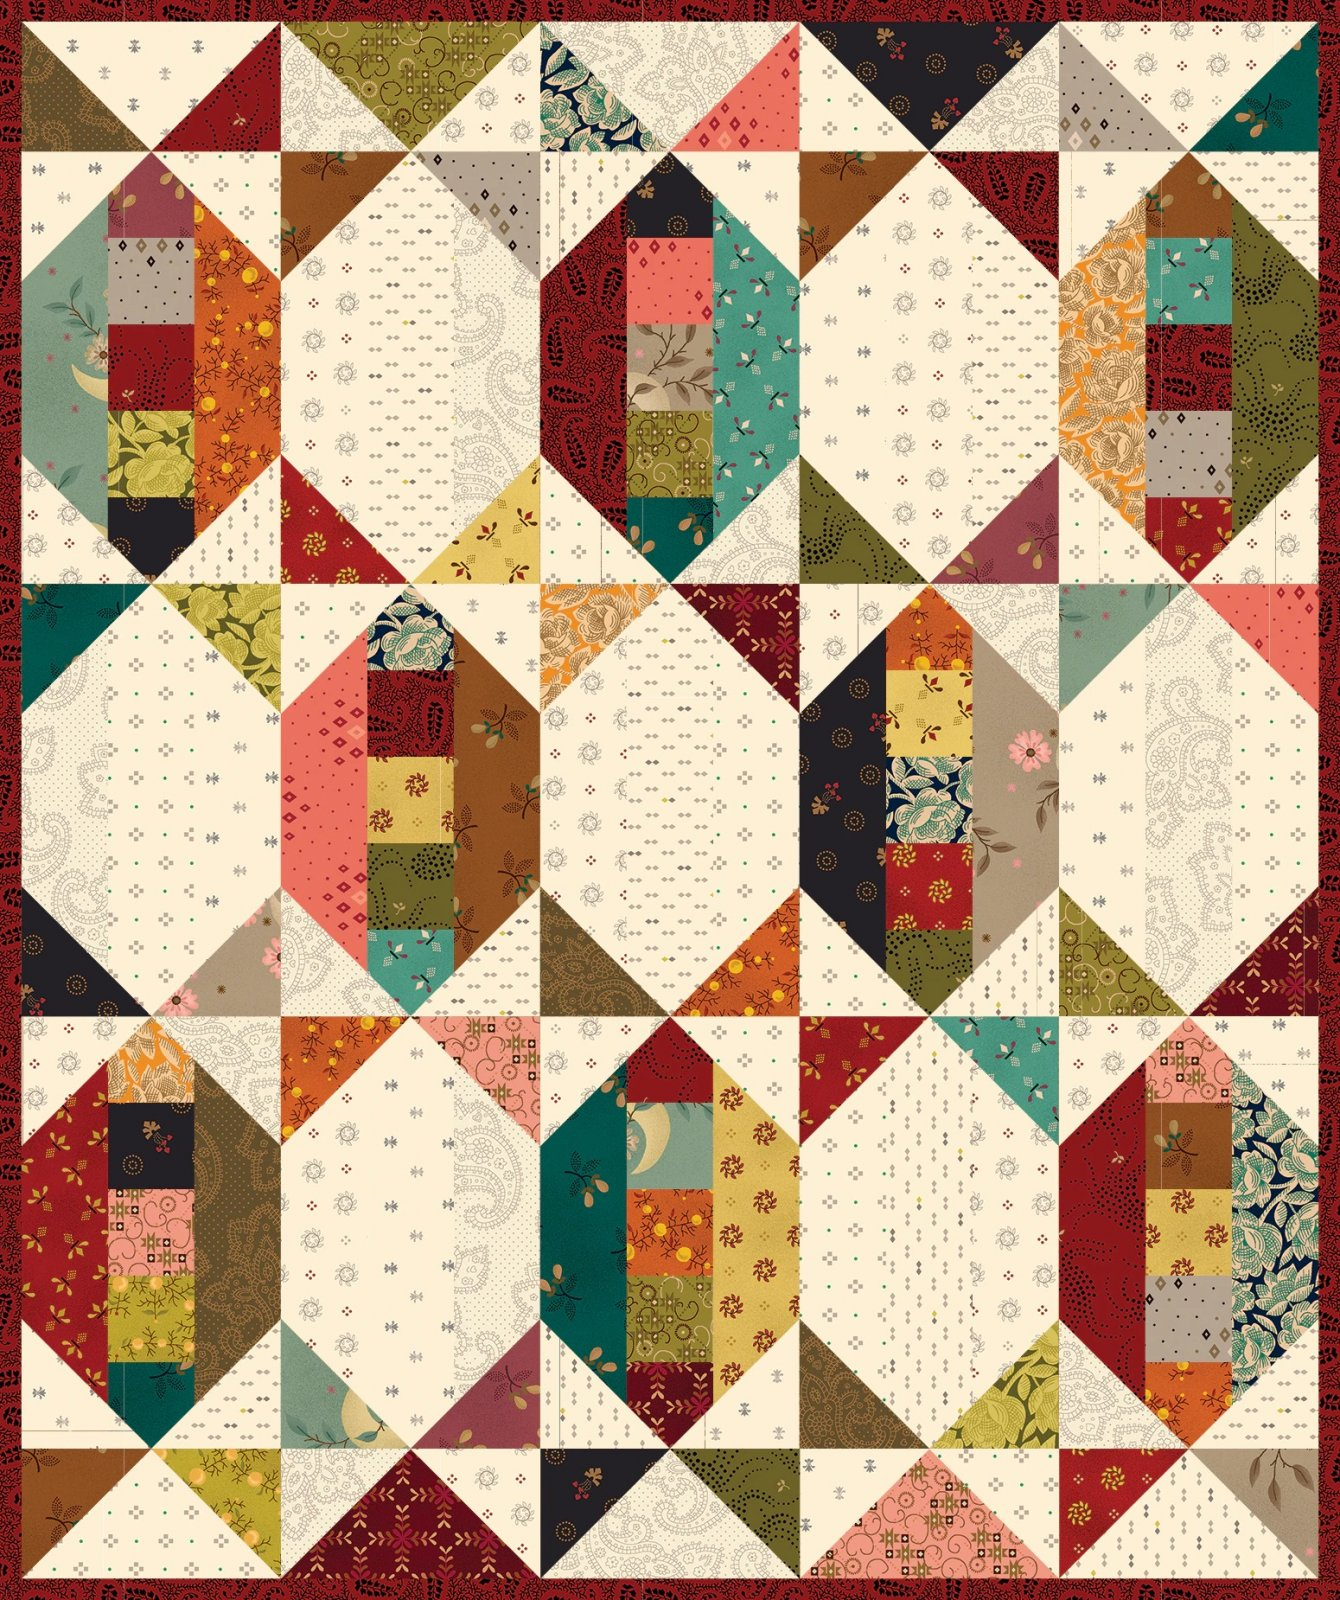 Simple Whatnots 10 - Laugh Yourself Silly Quilt Kit - 15 1/2 x 18 1/2